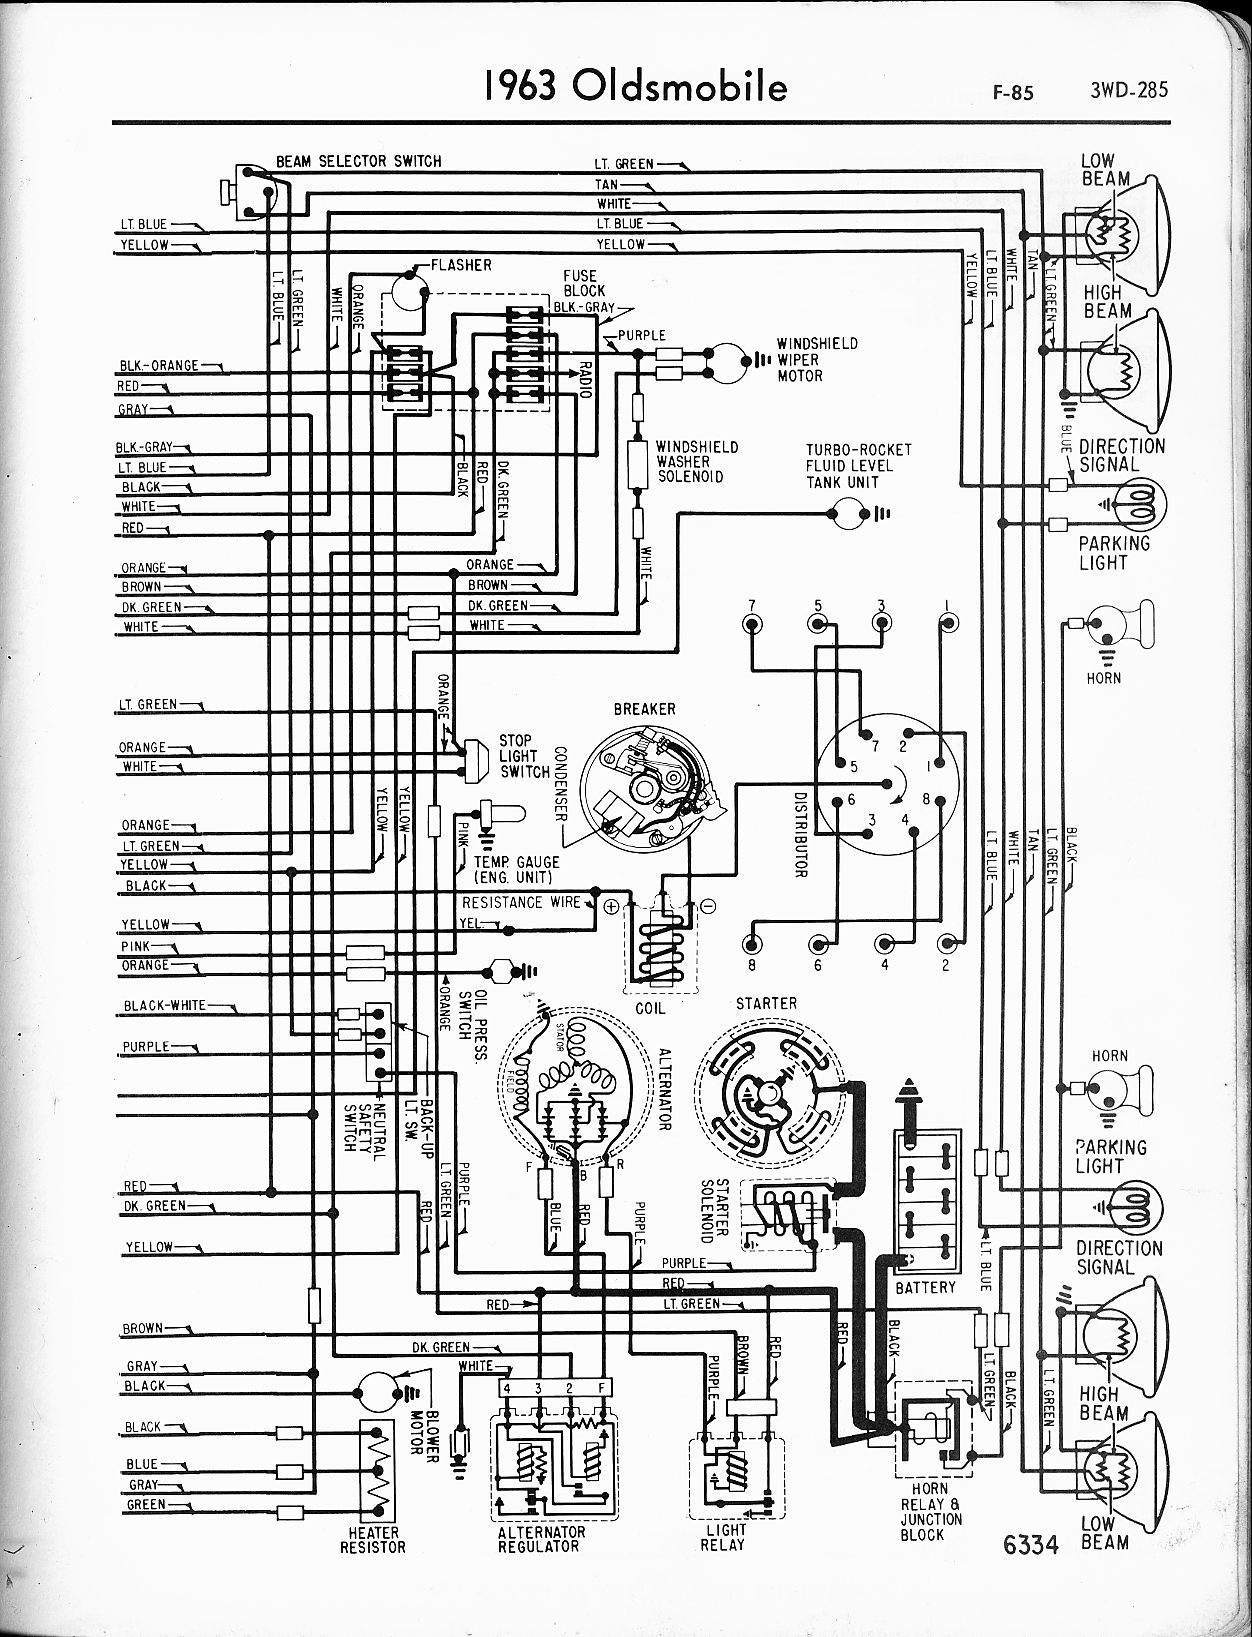 1996 bonneville wiring diagram